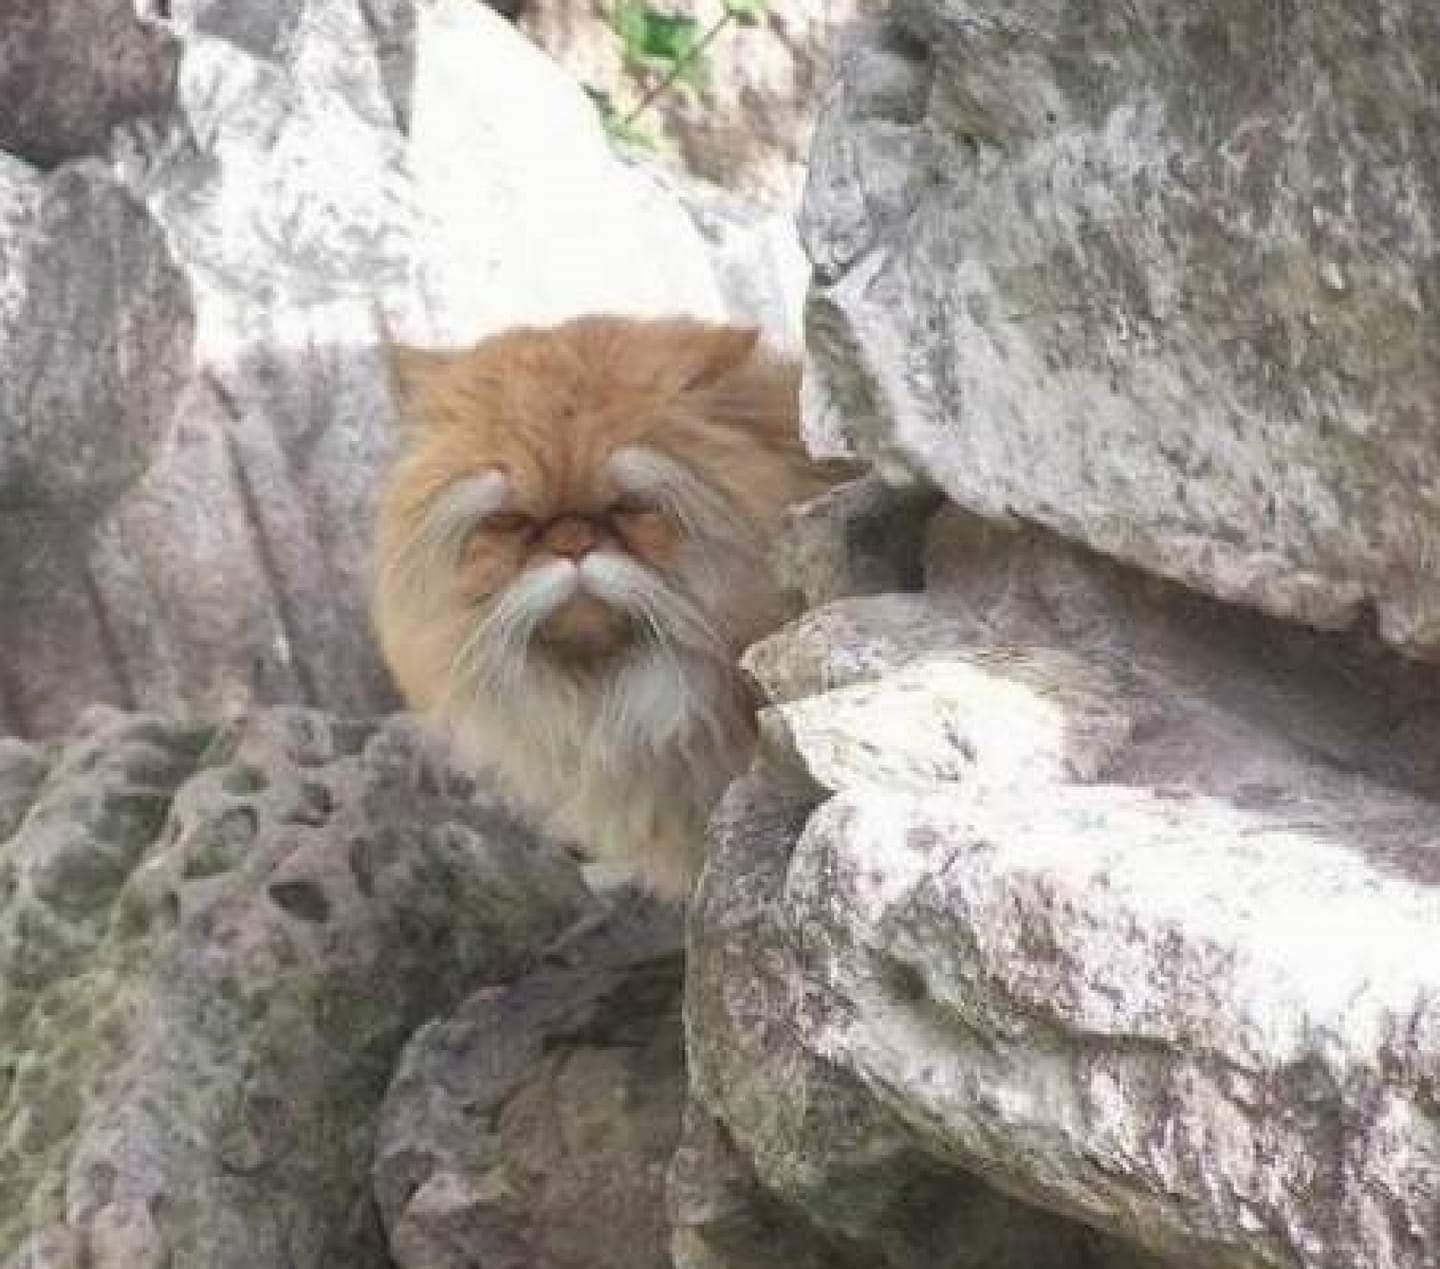 Pretty sure this cat knows kung fu